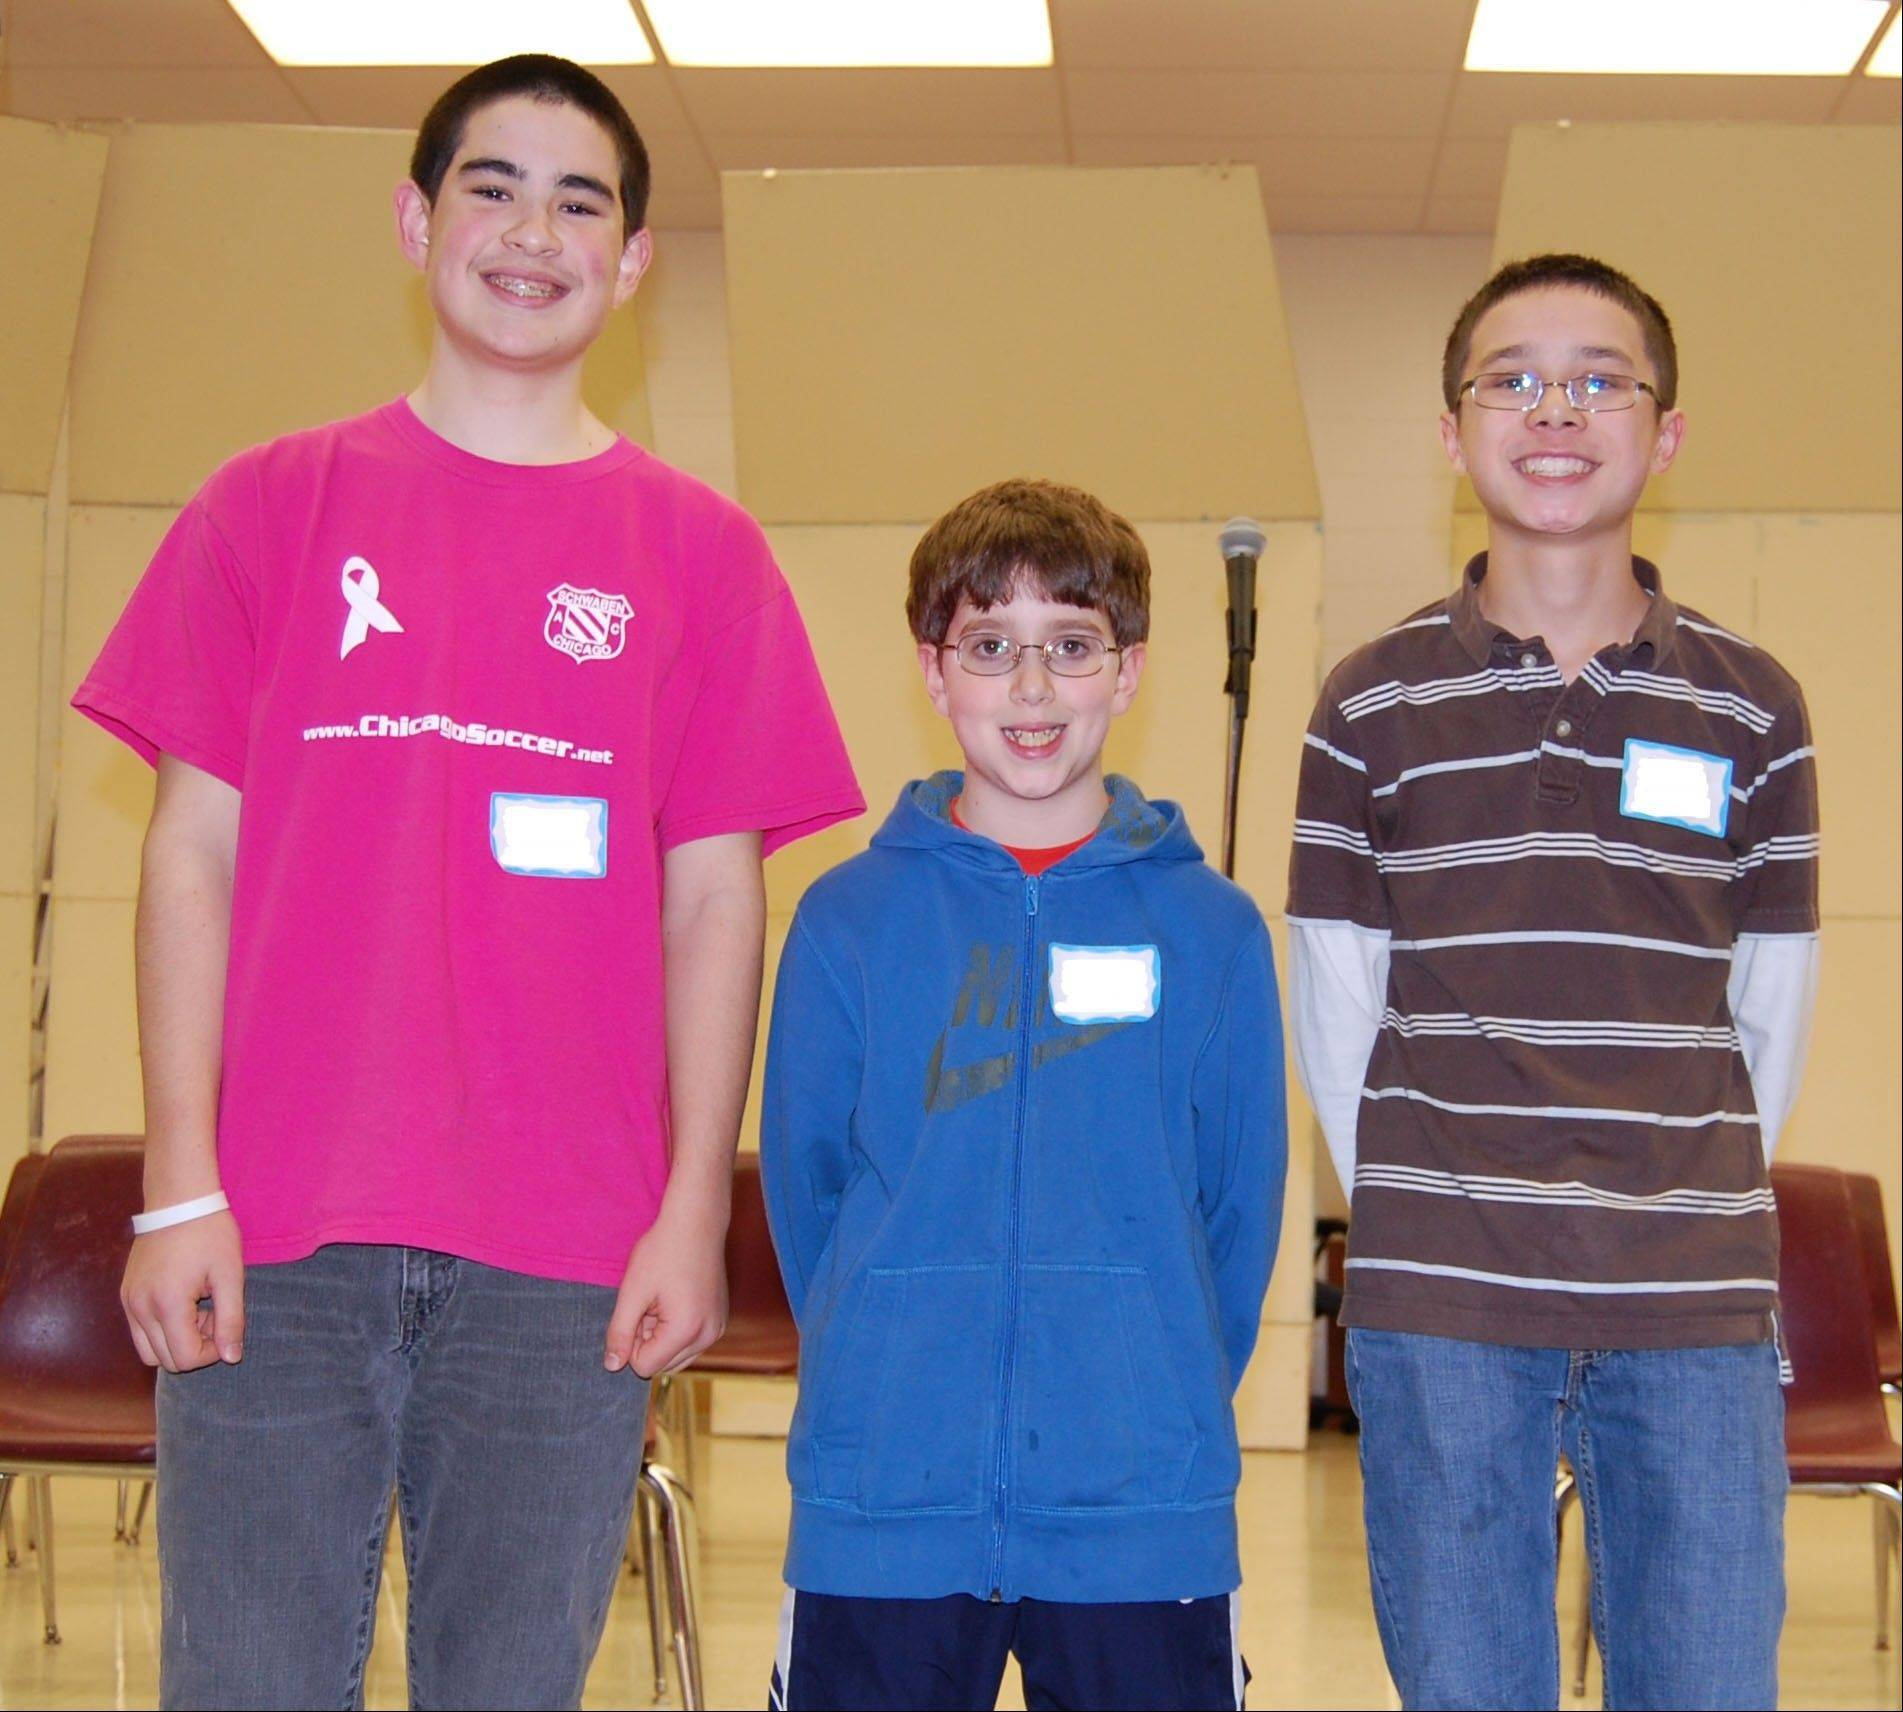 District 103 spelling bee winners, from left, first-place winner eighth-grader Kazemi Adachi, second-place winner sixth-grader Tyler Gordon and third-place winner eighth-grader Alec Smith.